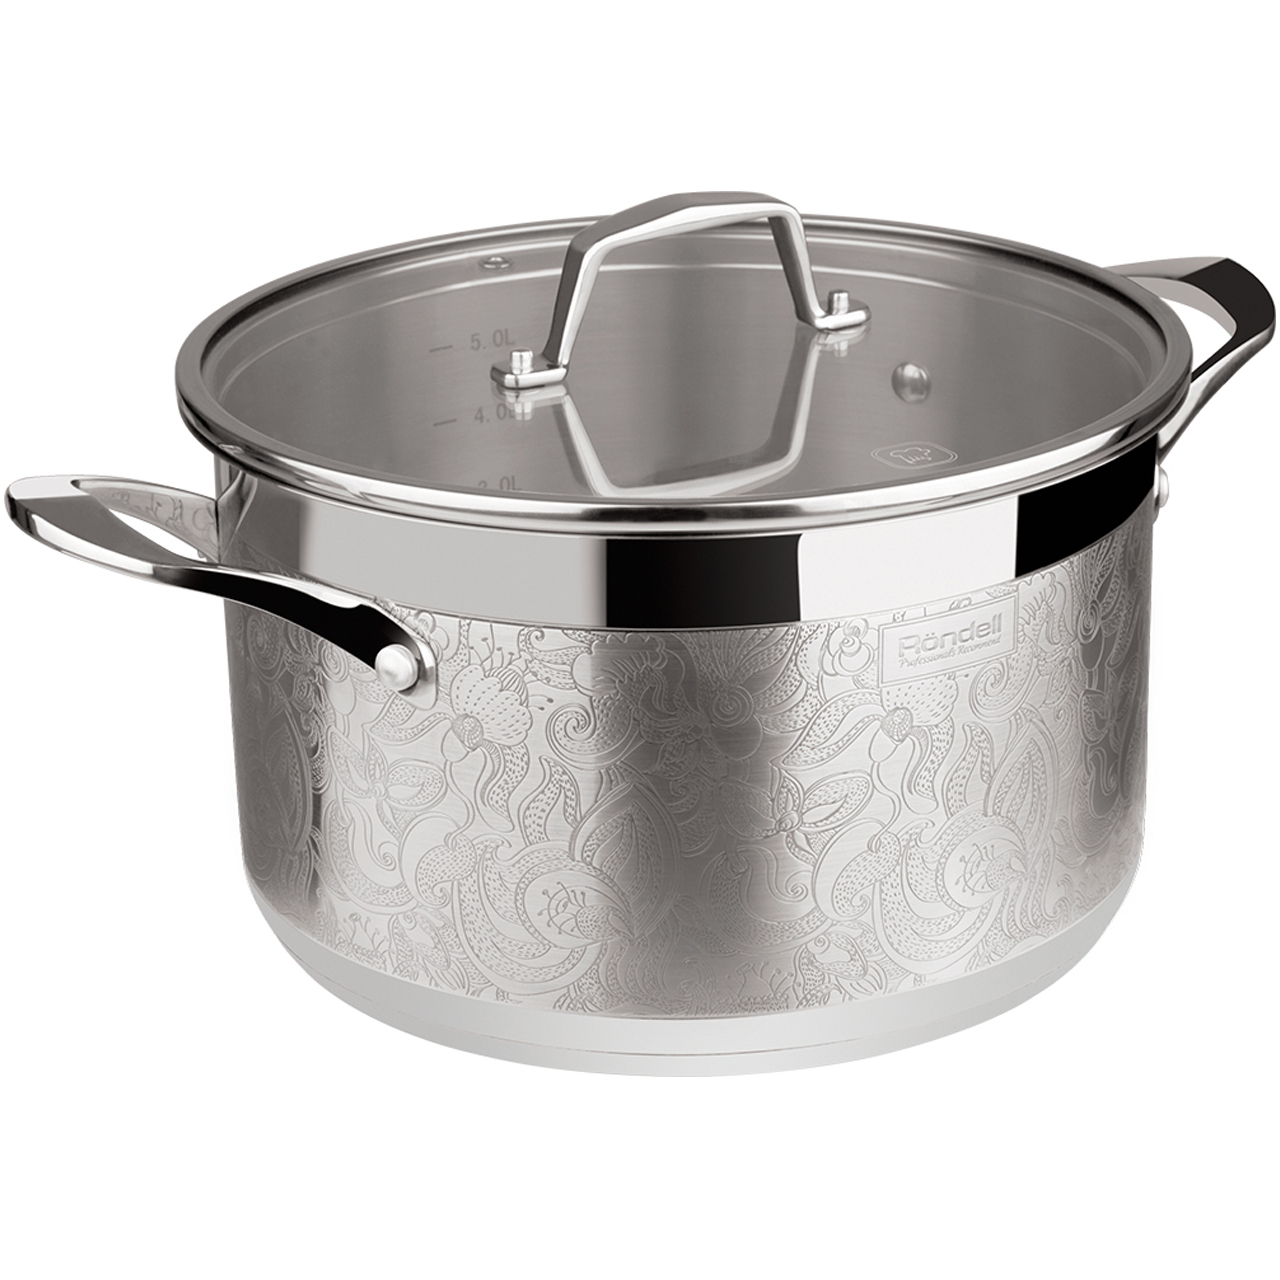 Фото - Saucepan with lid Rondell Fancy RDS-398 (Diameter 24 cm, Volume 5.5 L stainless steel, suitable for all types of plates) saucepan with lid eurostek es 1007 volume 4 5 liter diameter 22 cm пятислойное bottom suitable for all types of plates